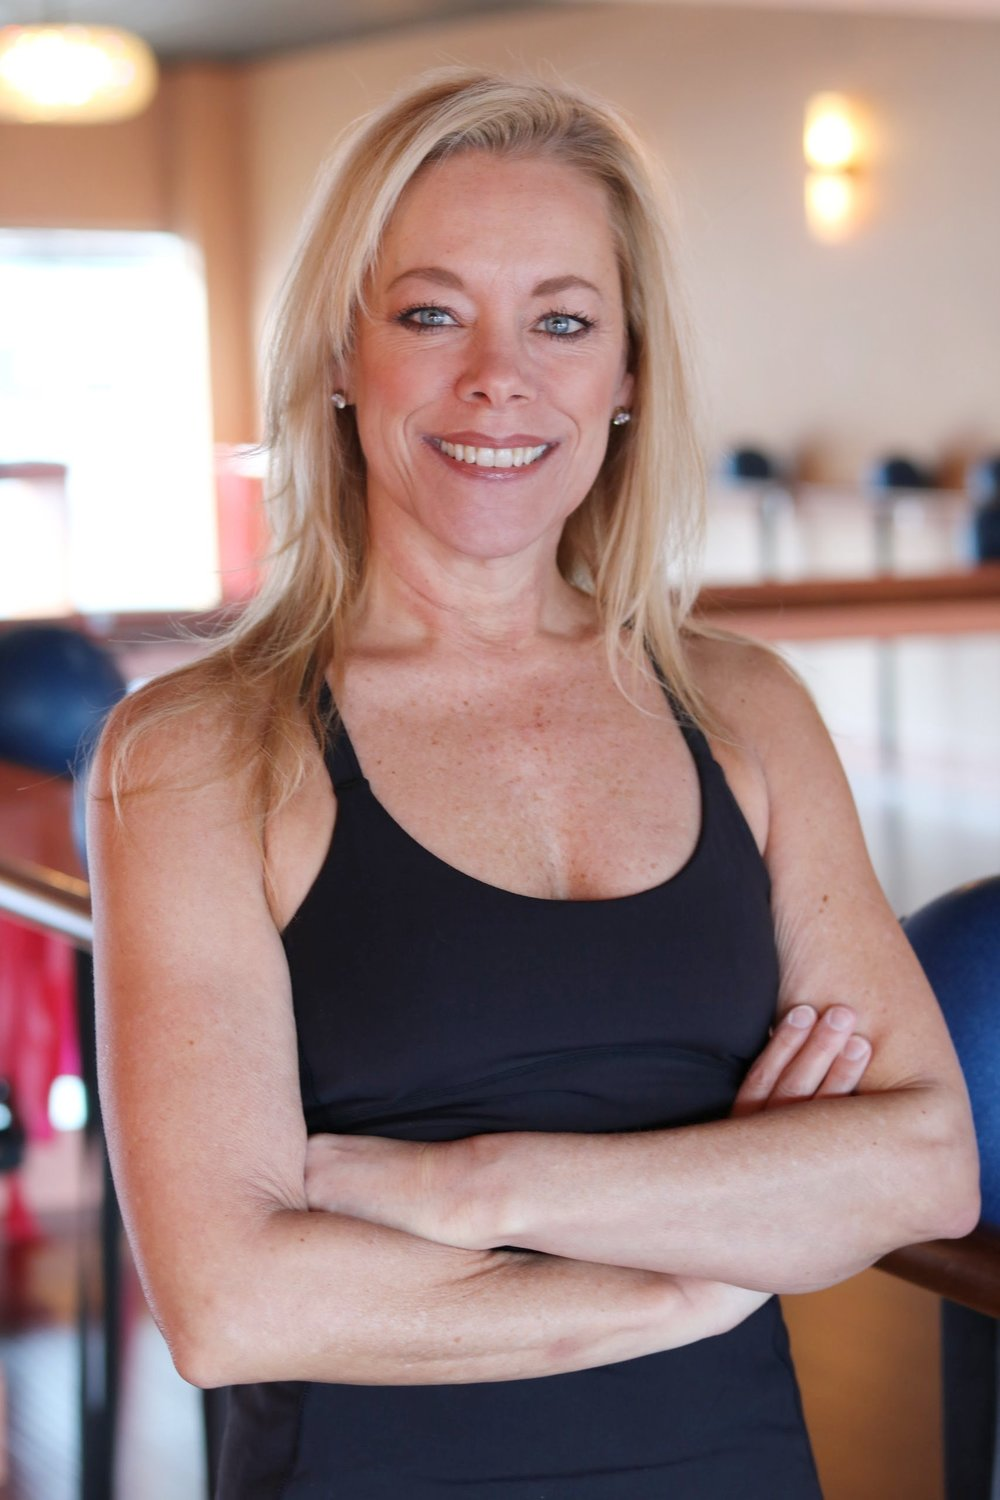 Sue Costigan // Owner + Founder  Sue began her fitness career over 35 years ago and understands it's more than how you look. She discovered Barre workouts during her rehab for a shoulder surgery.